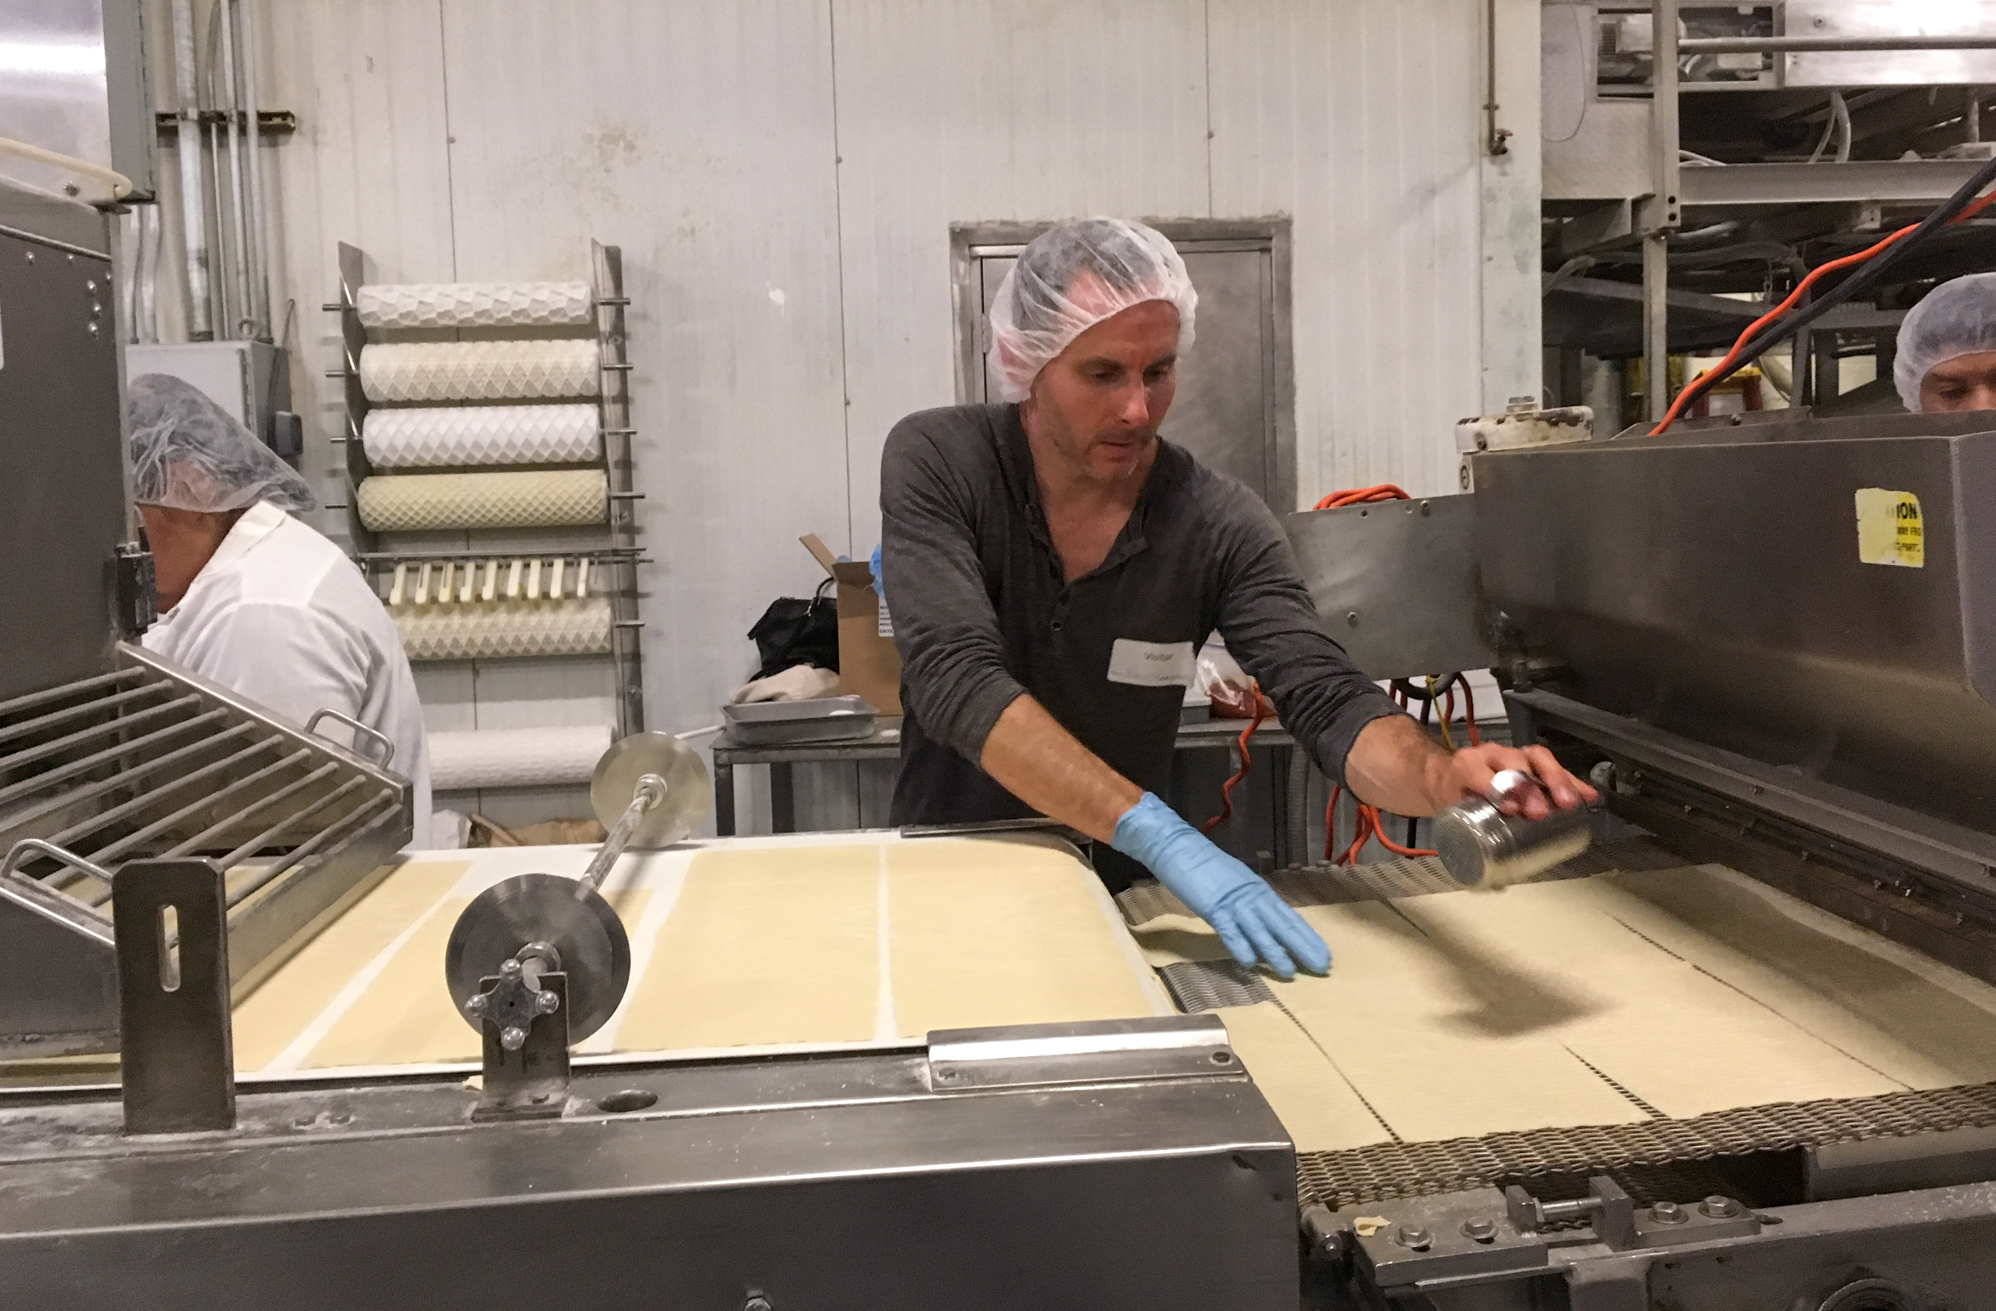 Kevin Rodriguez salts the matzo by hand. He later invested $8,000 in an antiquated salting machine to help with the process.